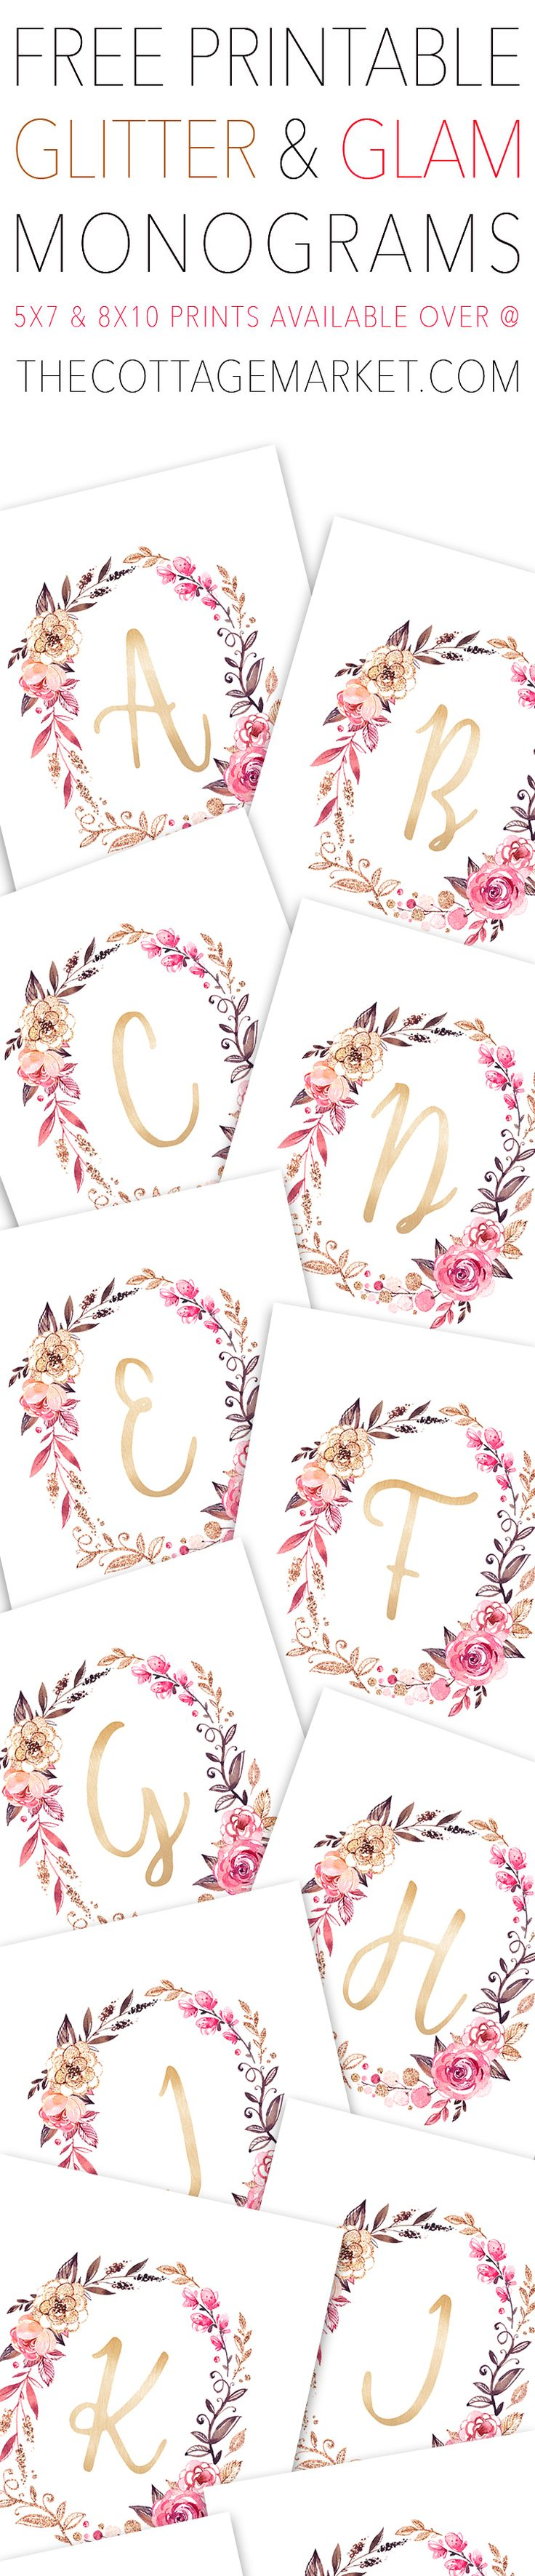 Glitter and Glam Monogram Wall Art